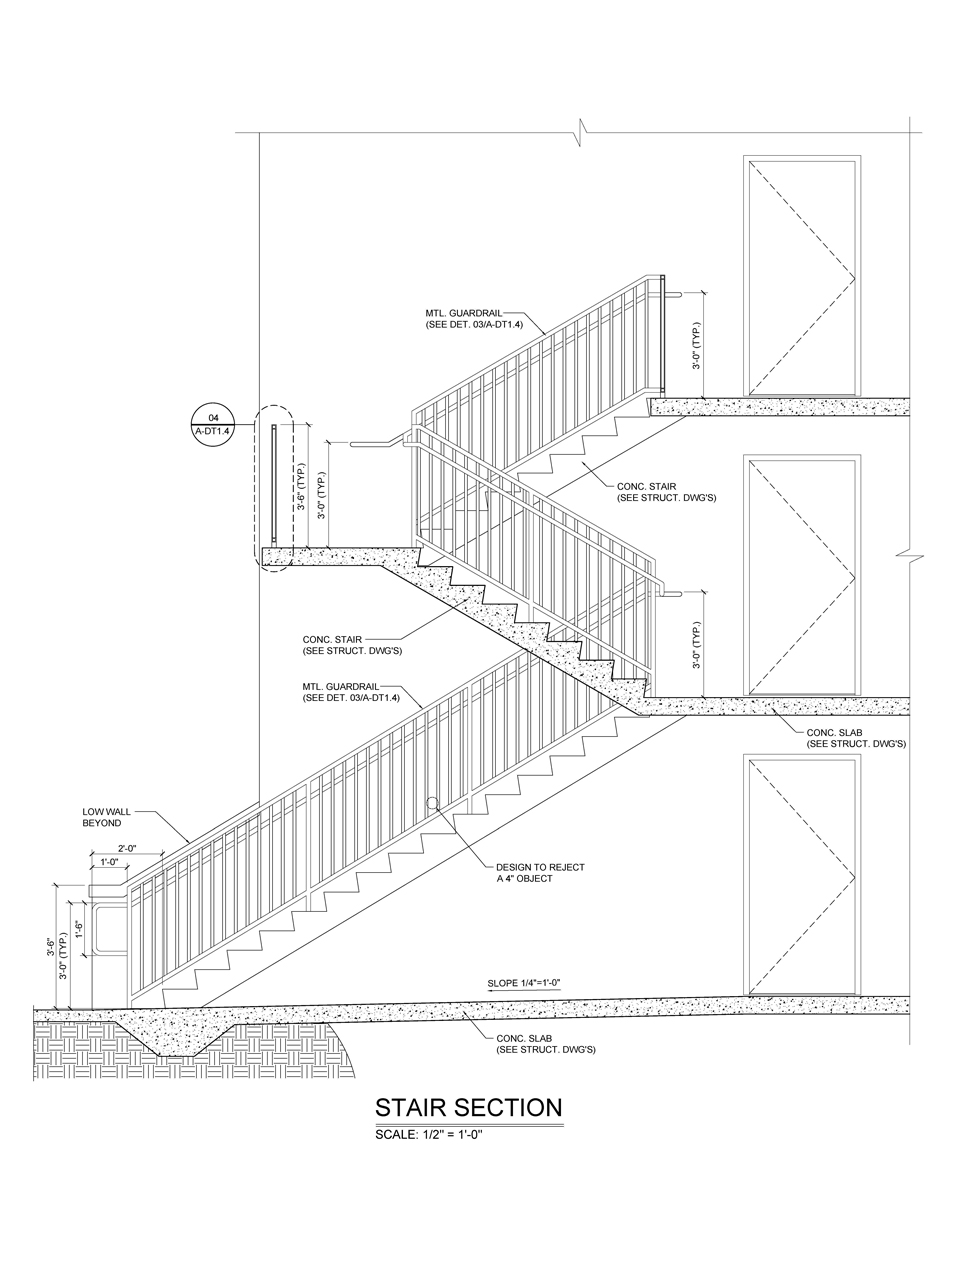 03_Stair_Section